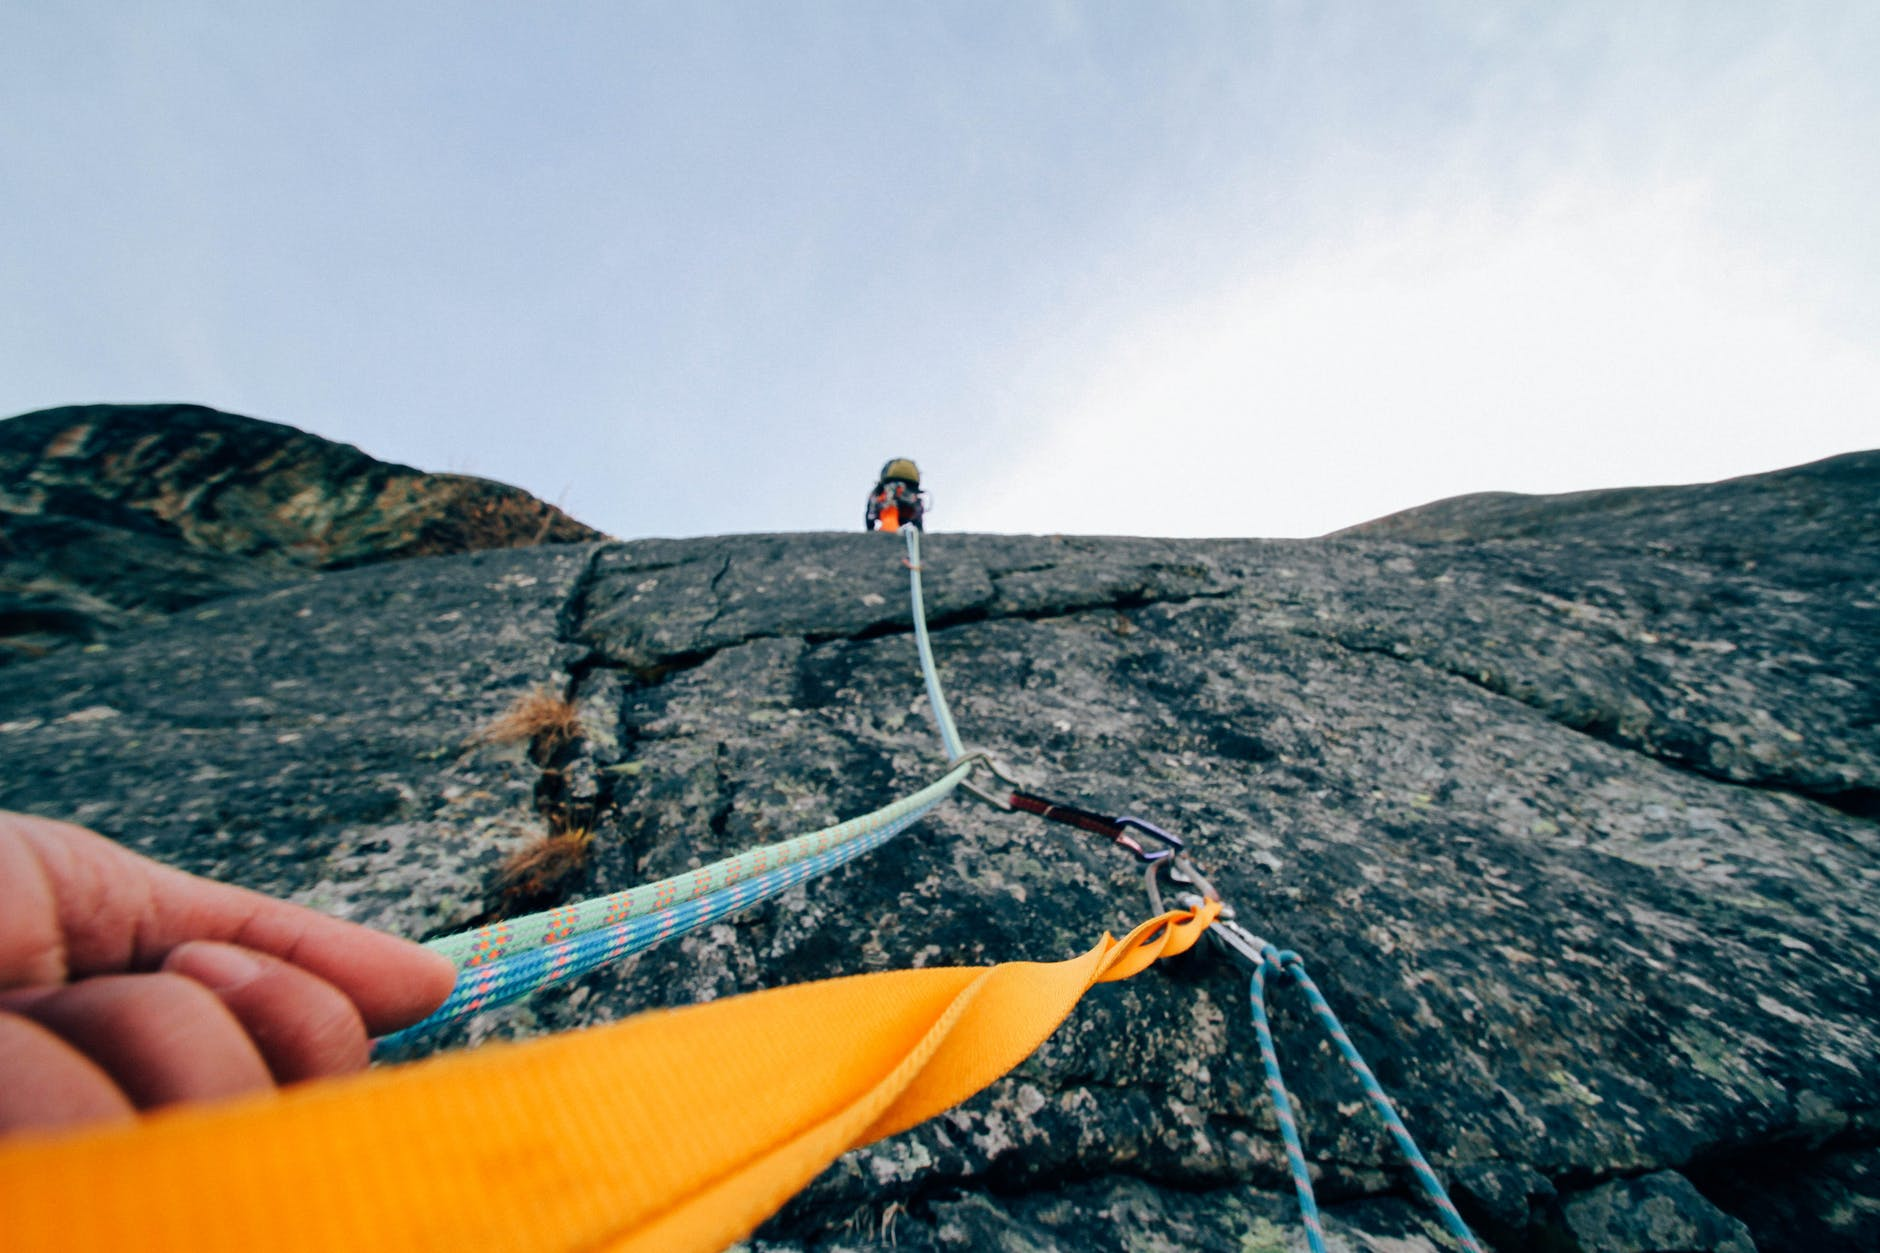 Staying Safe On Your Rock Climbing Adventure